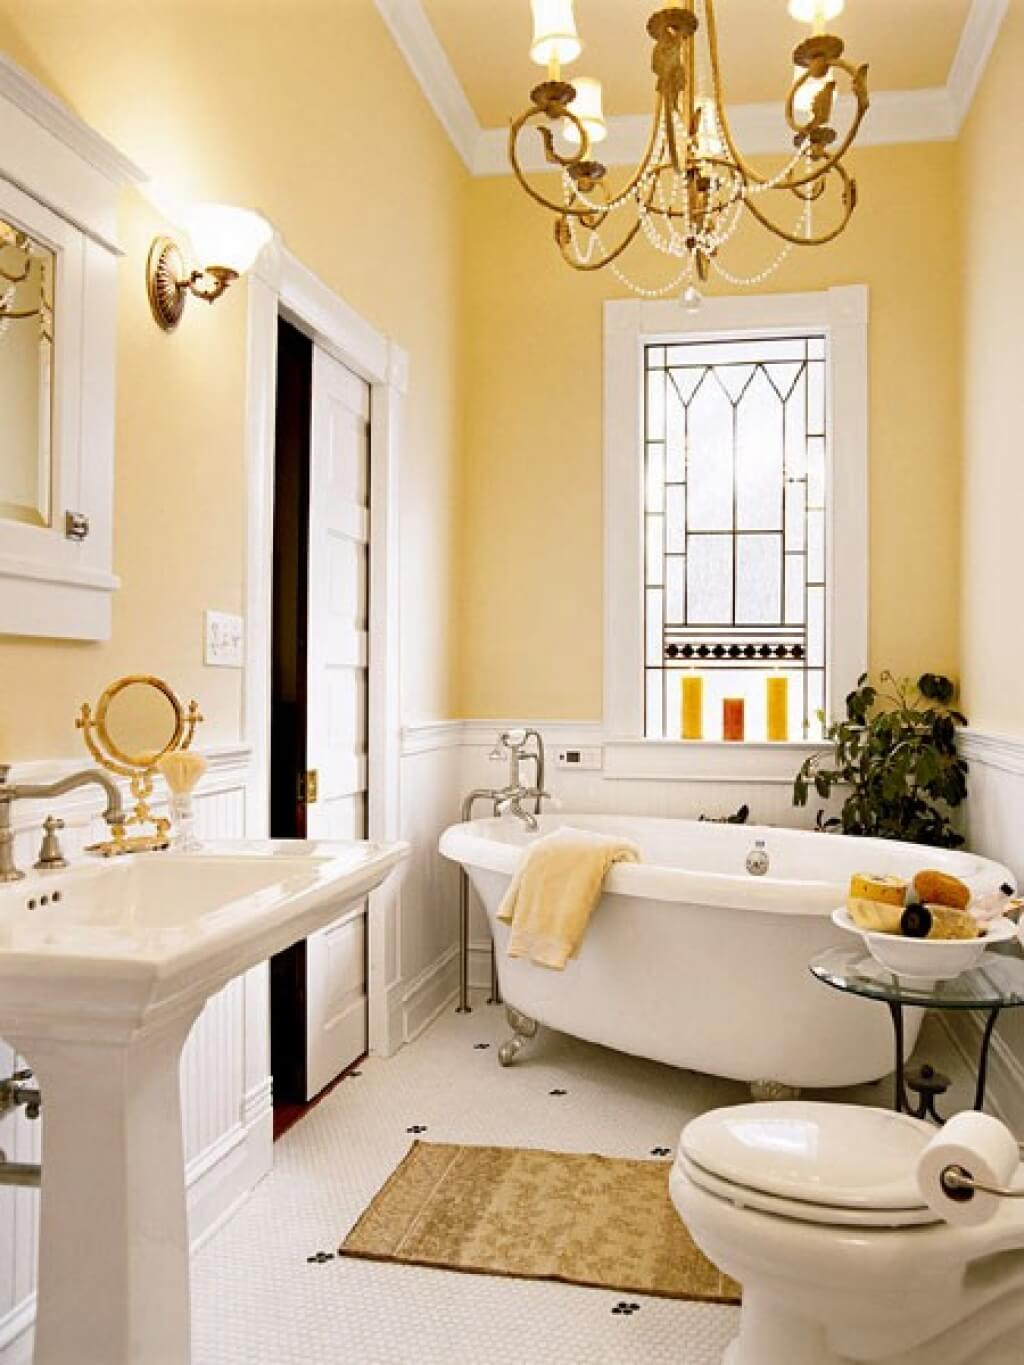 32 Best Small Bathroom Design Ideas and Decorations for 2020